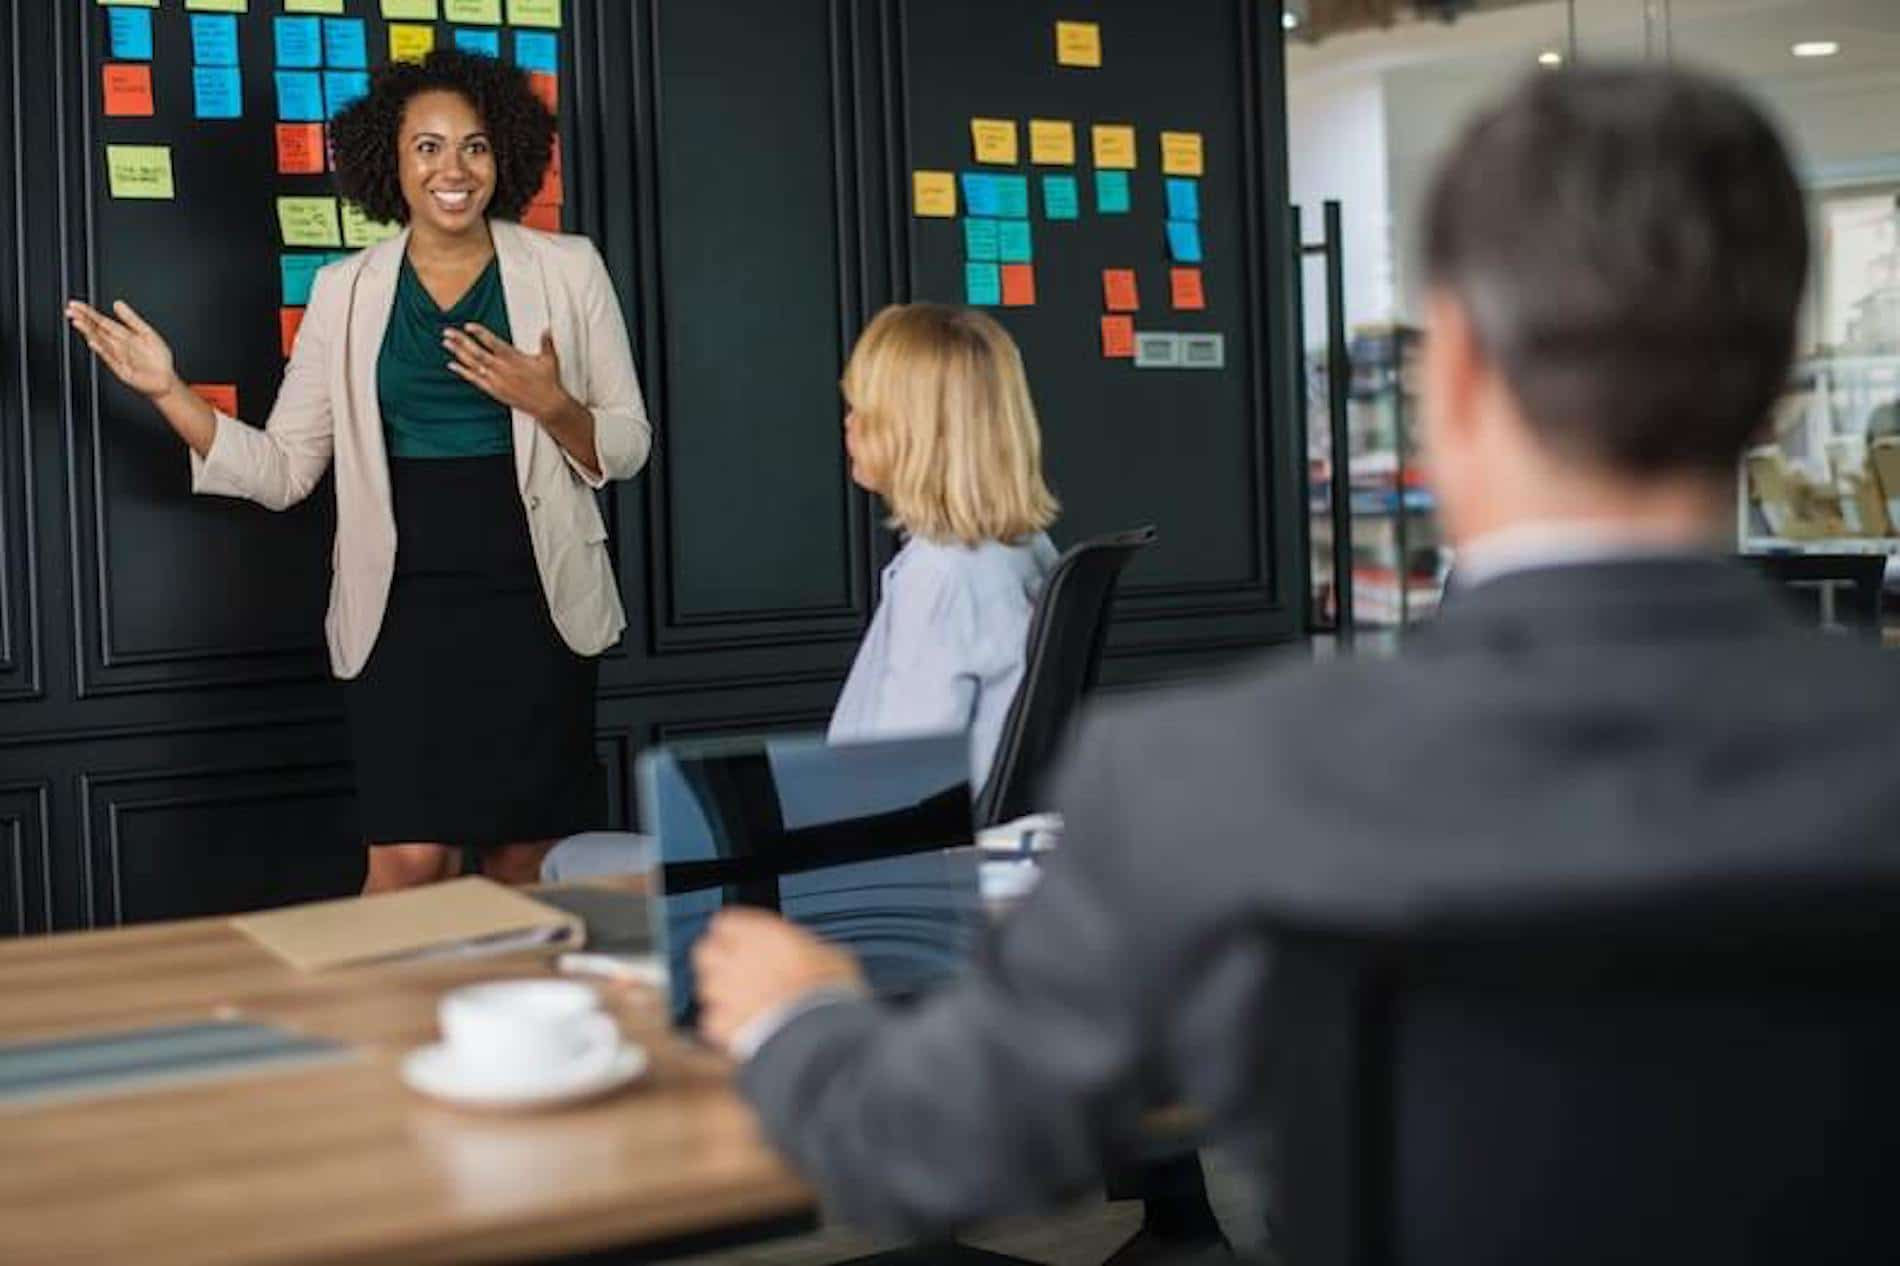 Woman confidently using fearless presentations public speaking training